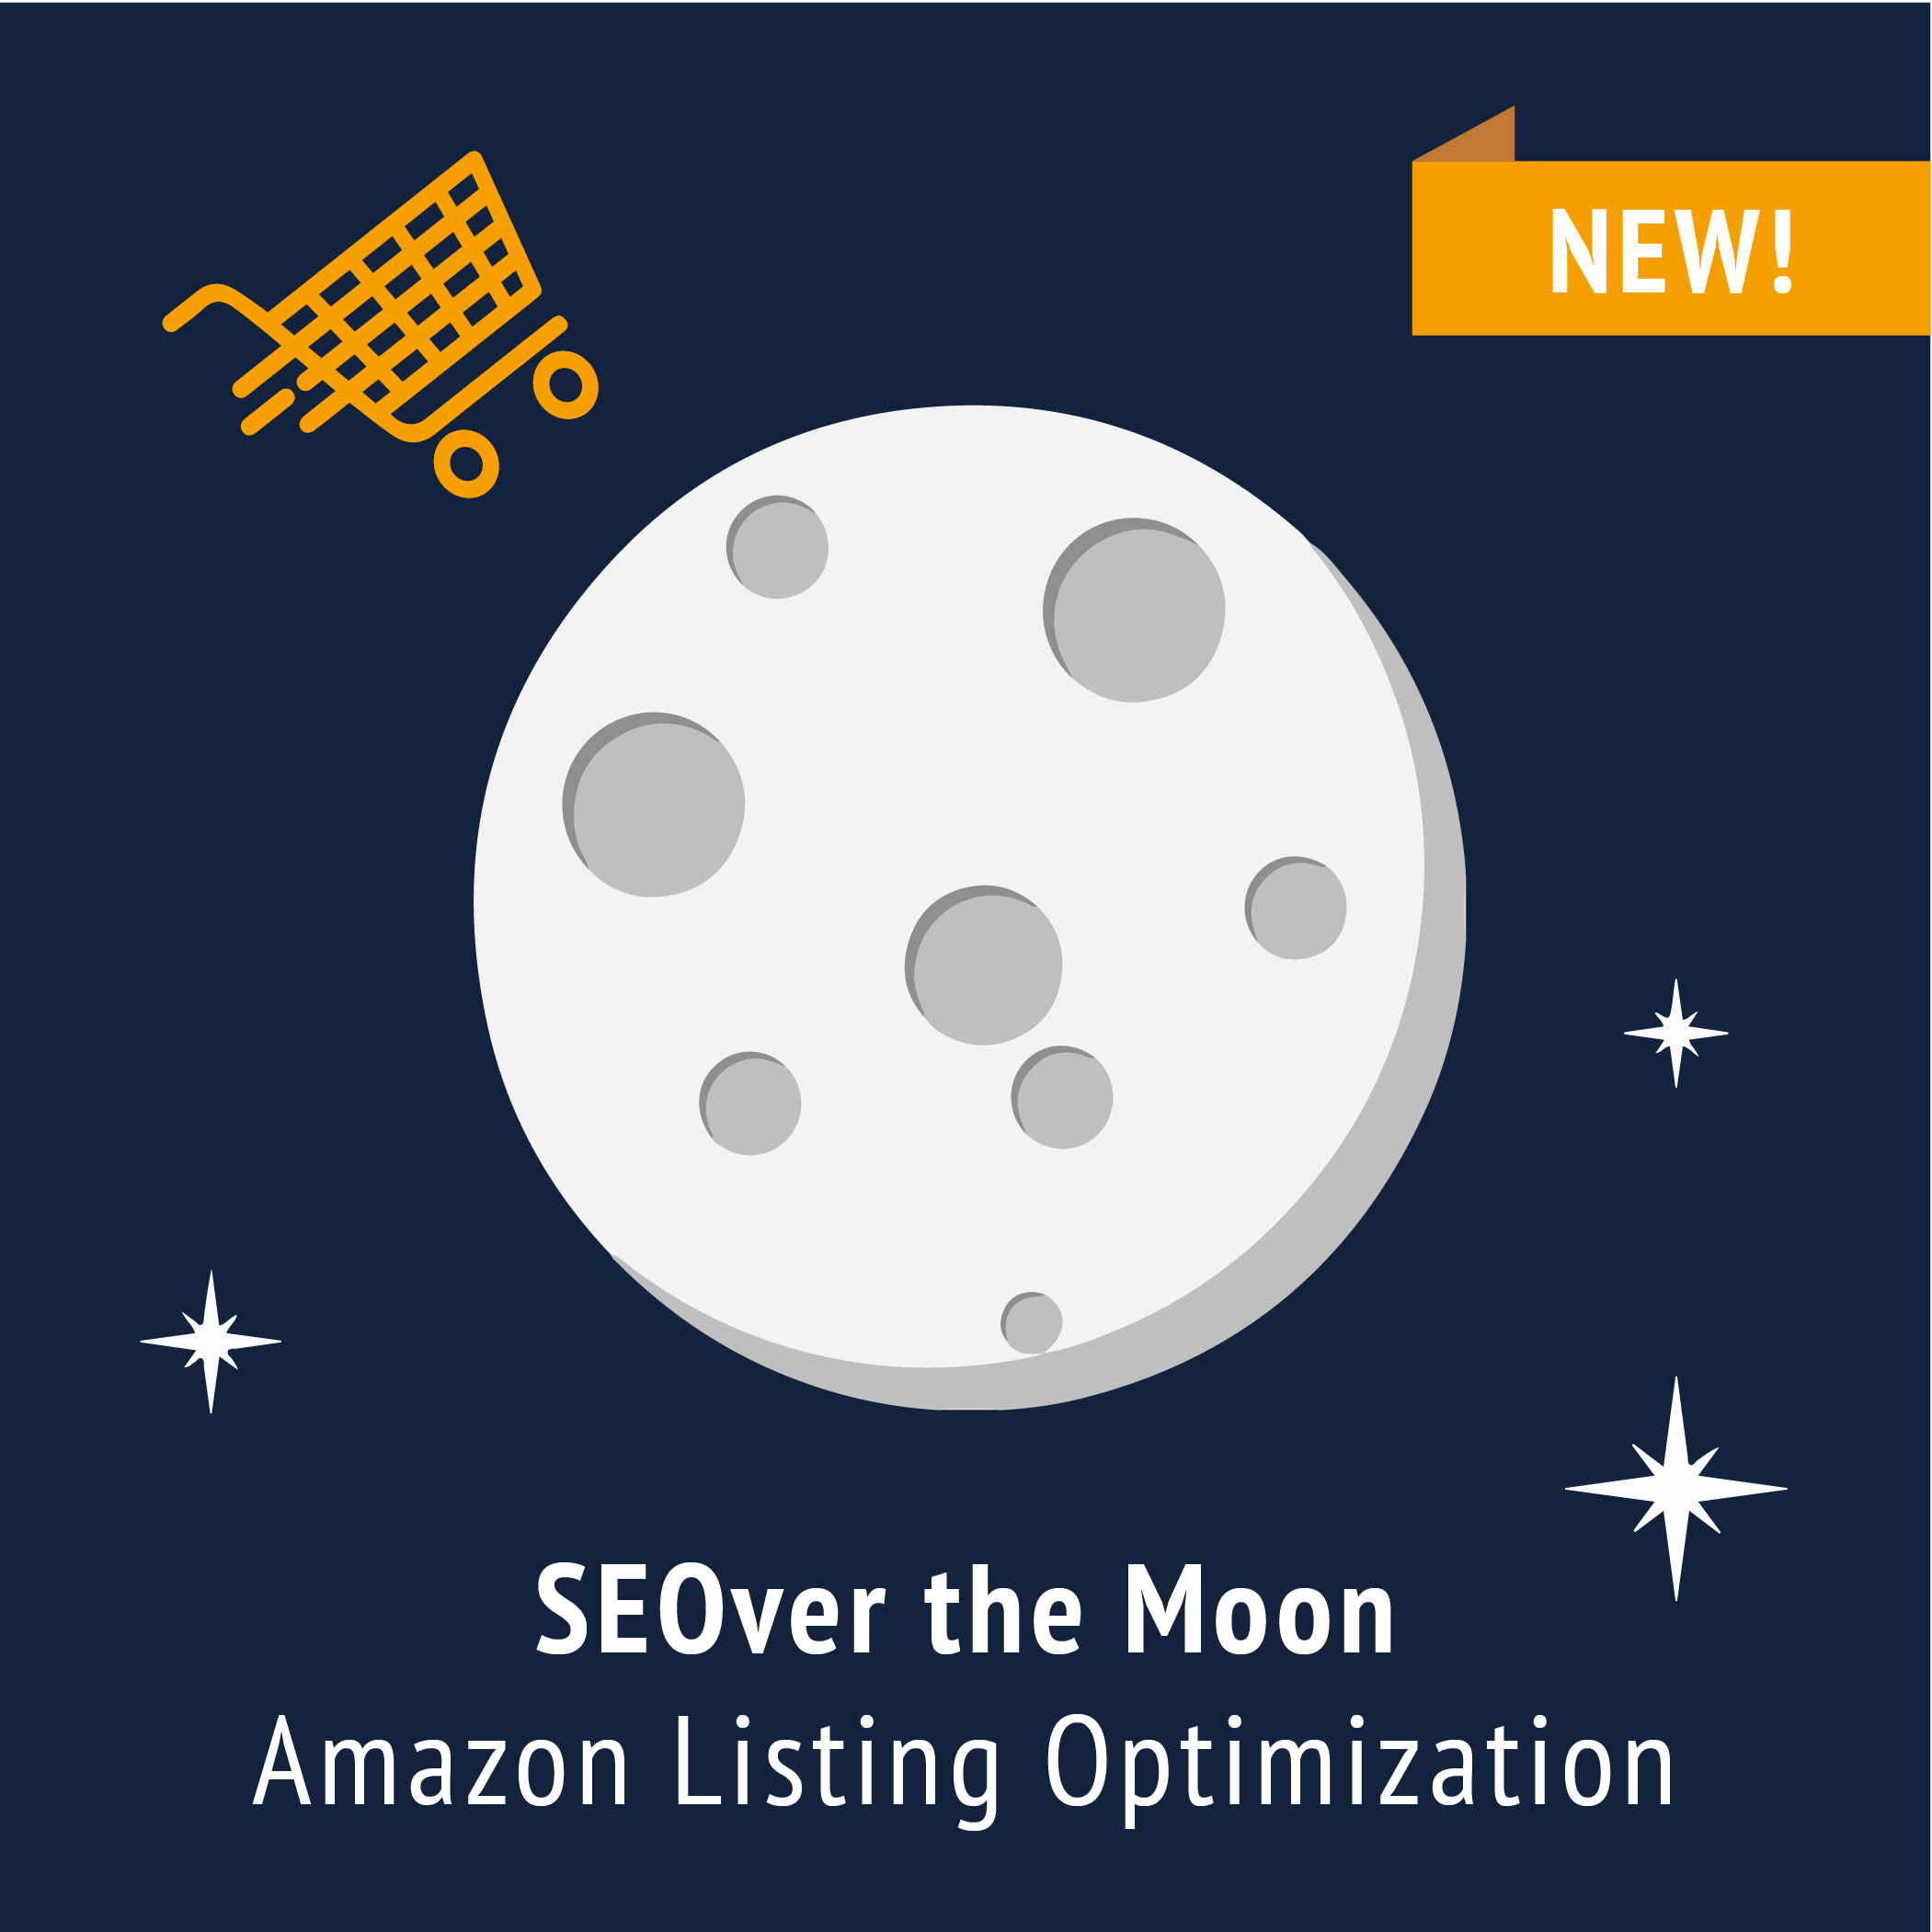 Emmazon Bundle SEO Amazon Listing Optimization from Marketing by Emma's Emmazon